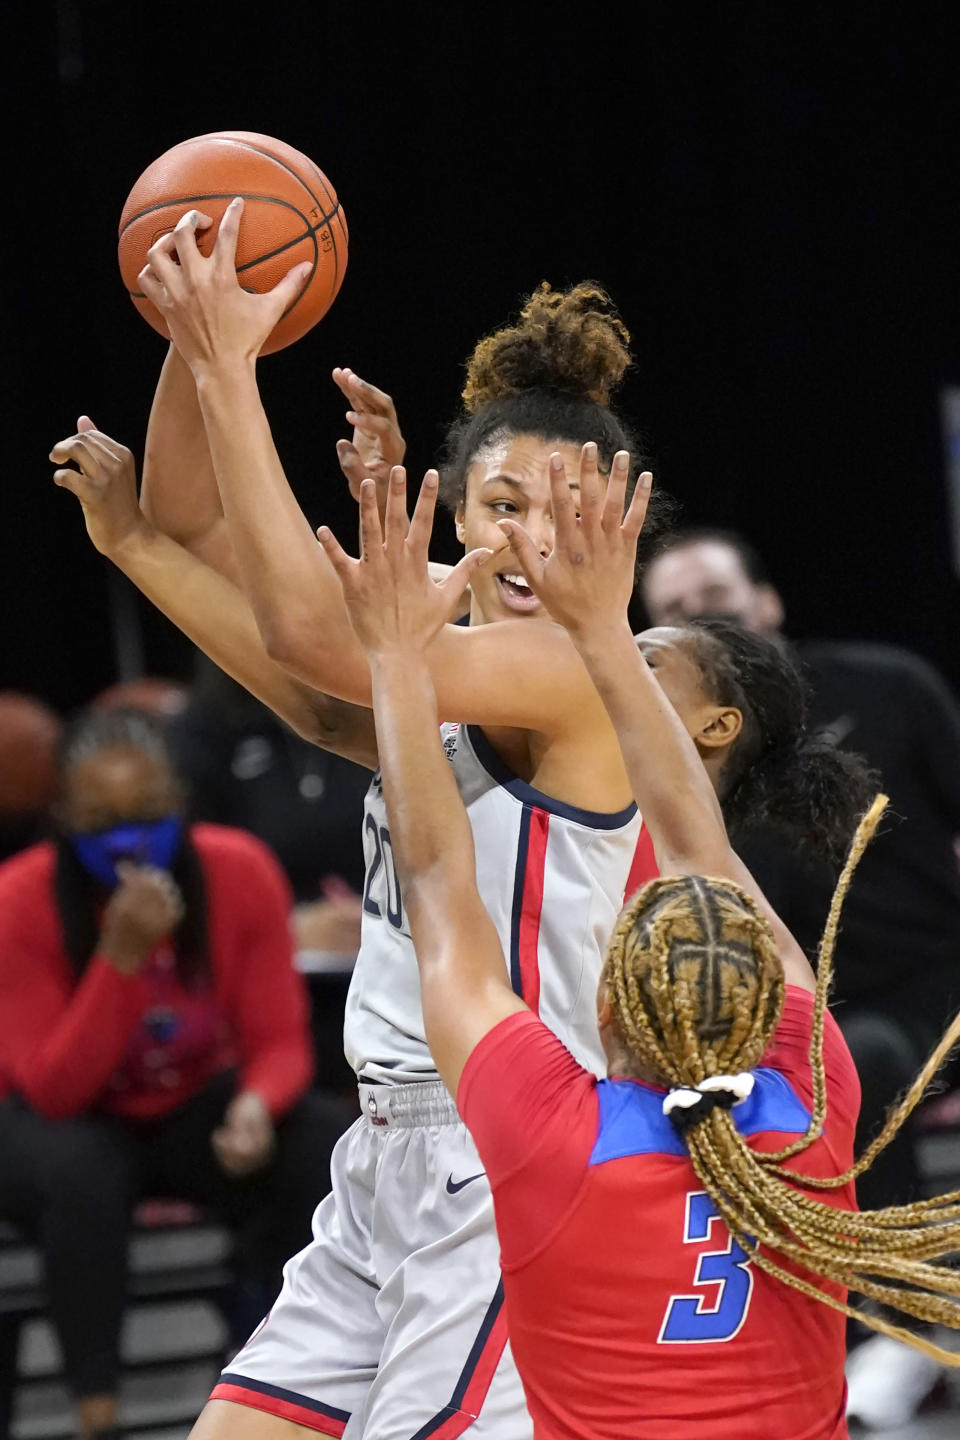 Connecticut's Olivia Nelson-Ododa is pressured by DePaul's Deja Church (3) and Darrione Rogers during the first half of an NCAA college basketball game Sunday, Jan. 31, 2021, in Chicago. (AP Photo/Charles Rex Arbogast)